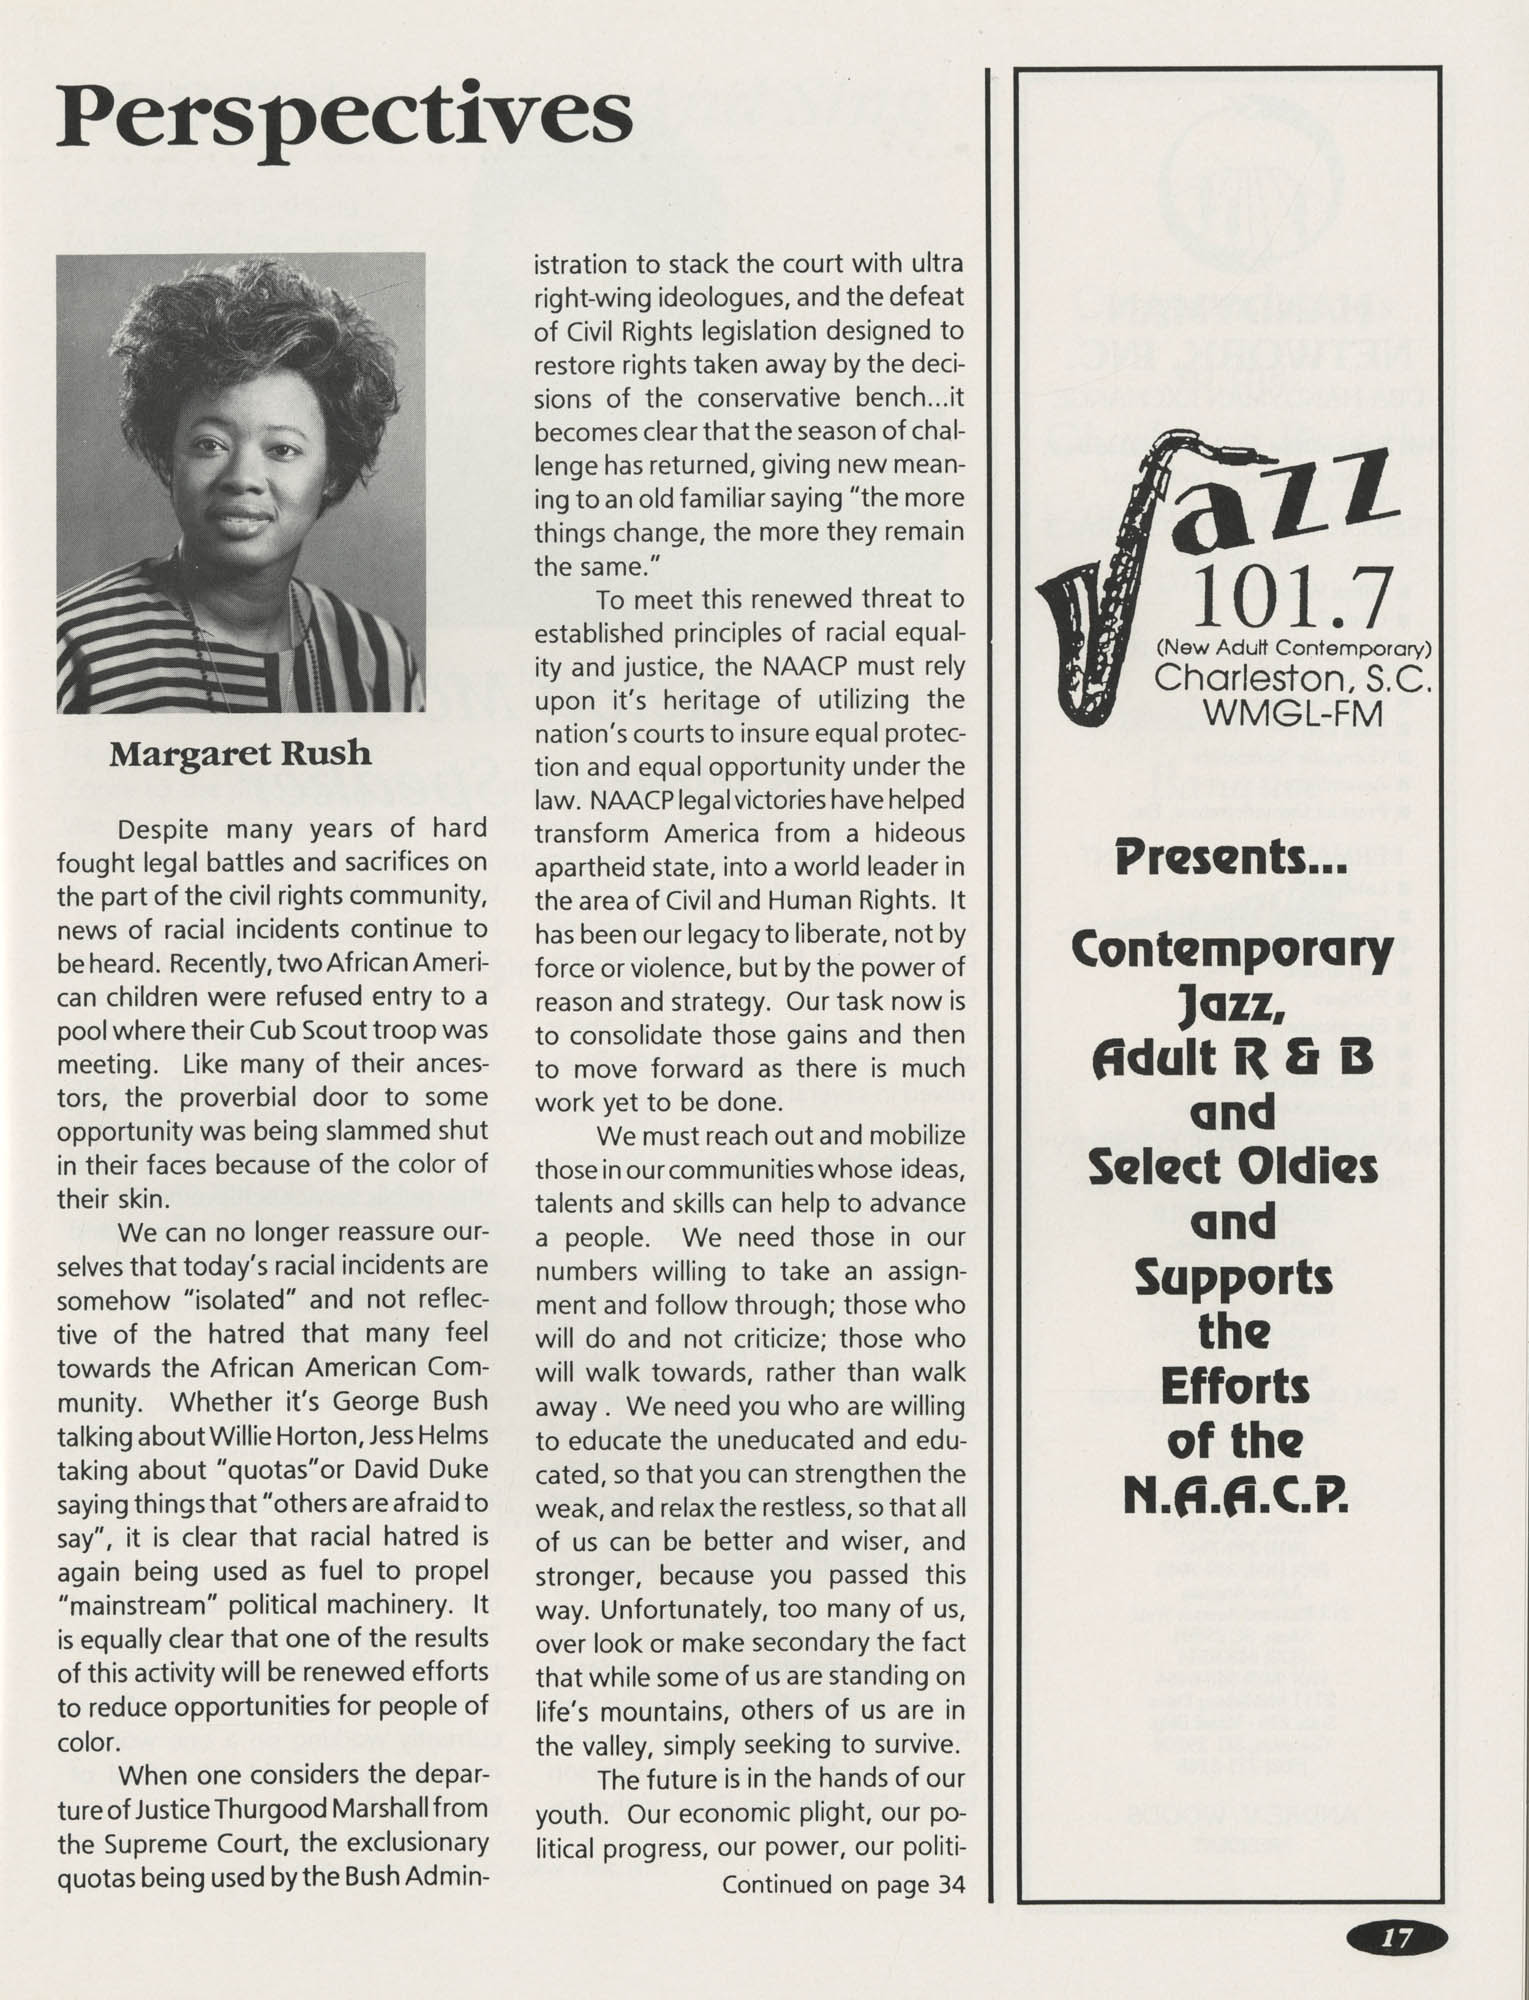 1991 Freedom Fund Magazine, Charleston Branch of the NAACP, Page 17